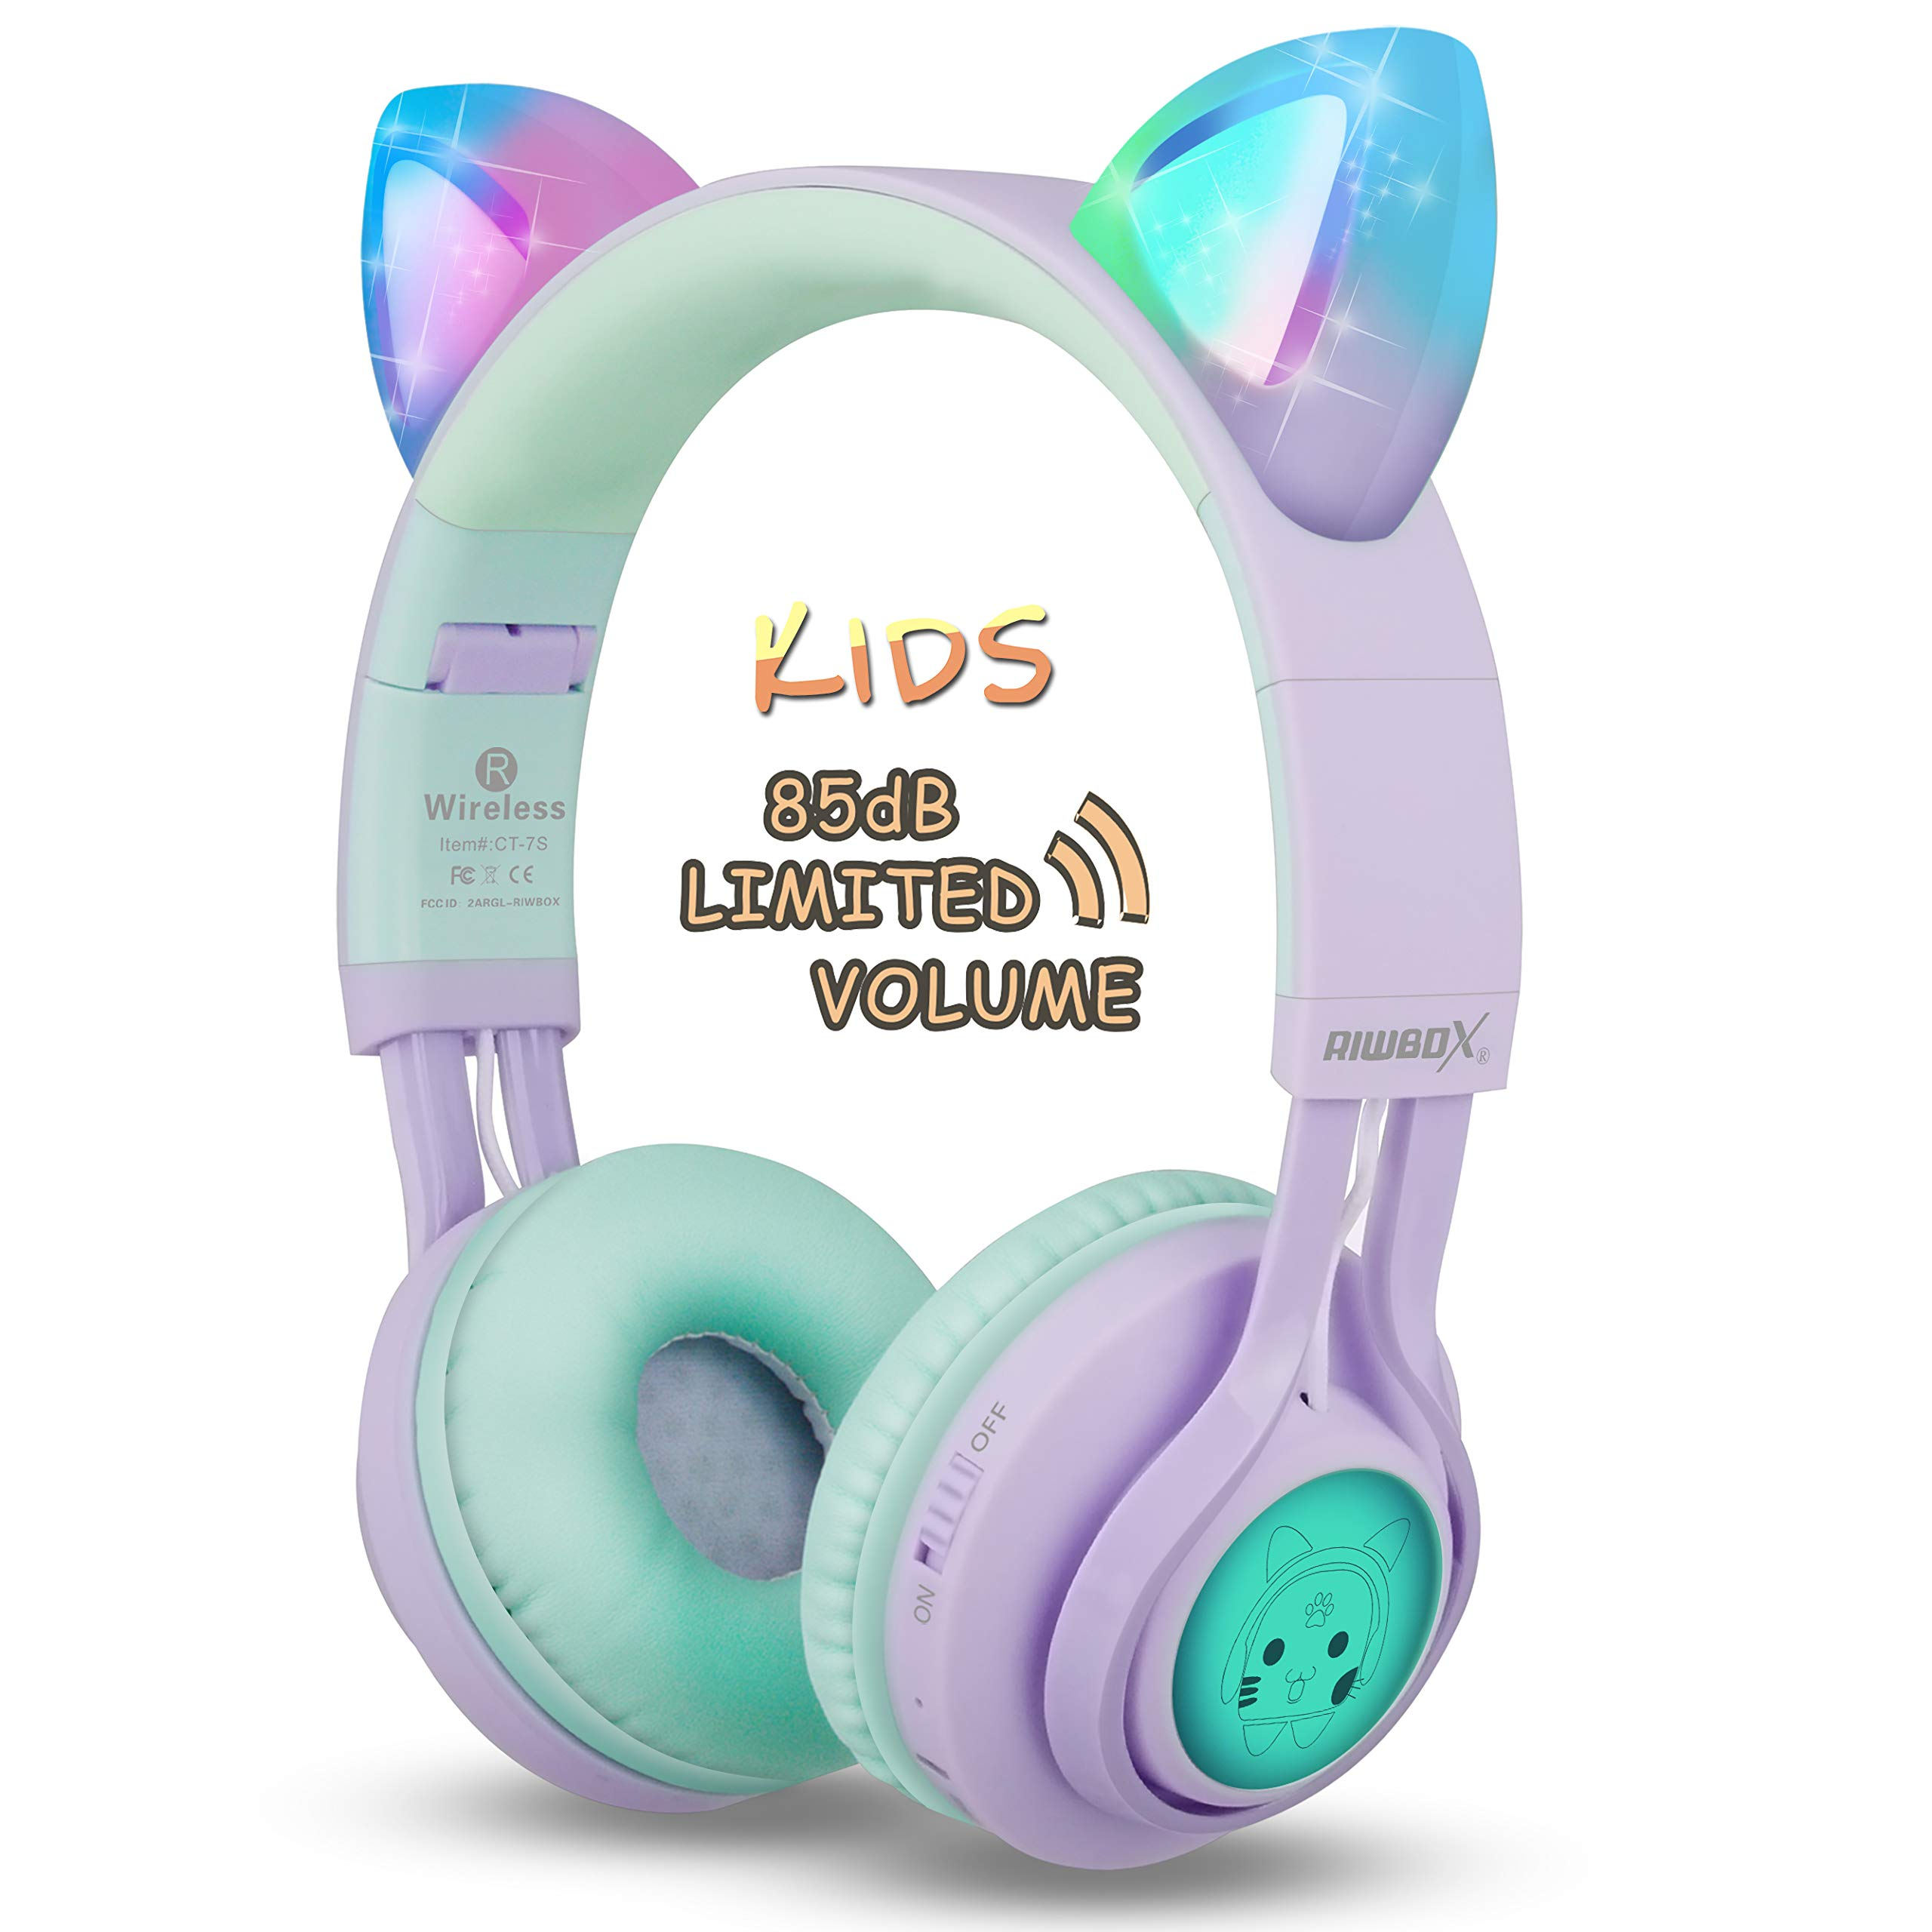 Kids Headphones, Riwbox CT-7S Cat Ear Bluetooth Headphones 85dB Volume Limiting,LED Light Up Kids Wireless Headphones Over Ear with Microphone for iPhone/iPad/Kindle/Laptop/PC/TV (Purple&Green)